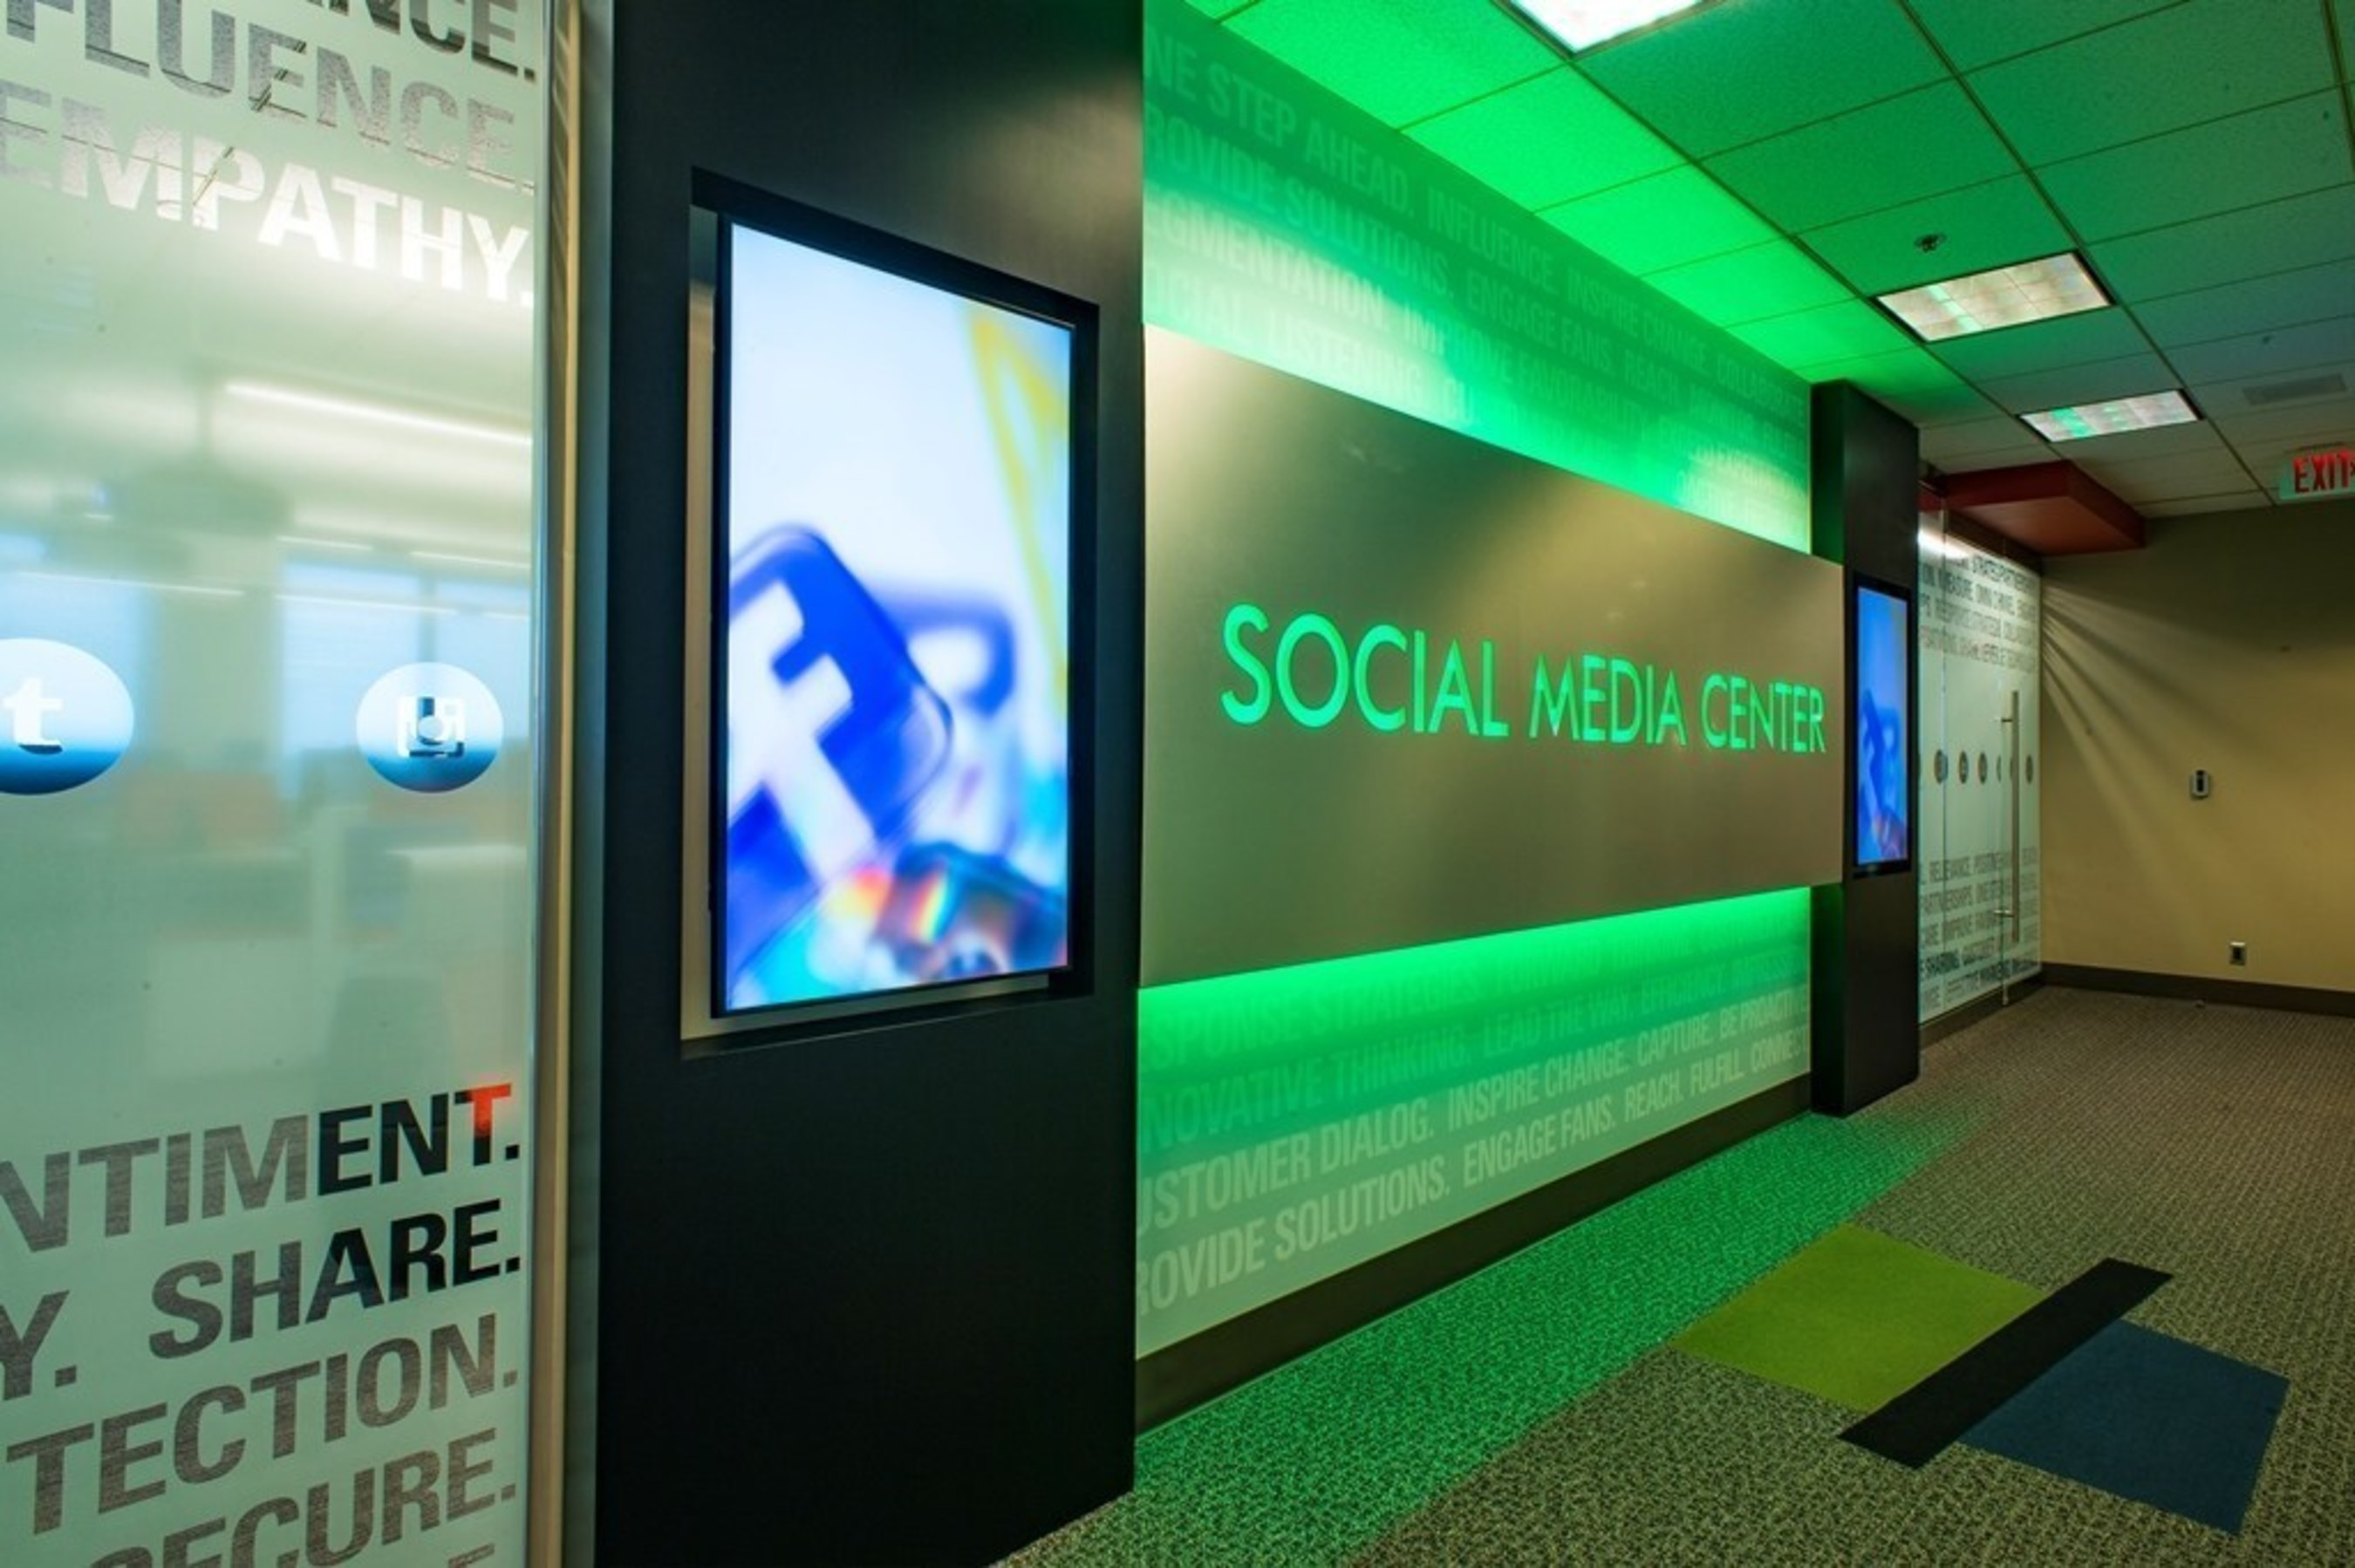 The exterior of Georgia Power's new Social Media Center in Atlanta. The new center is located near the Georgia Power Storm Center, facilitating fast and accurate social media communication with customers during severe weather.